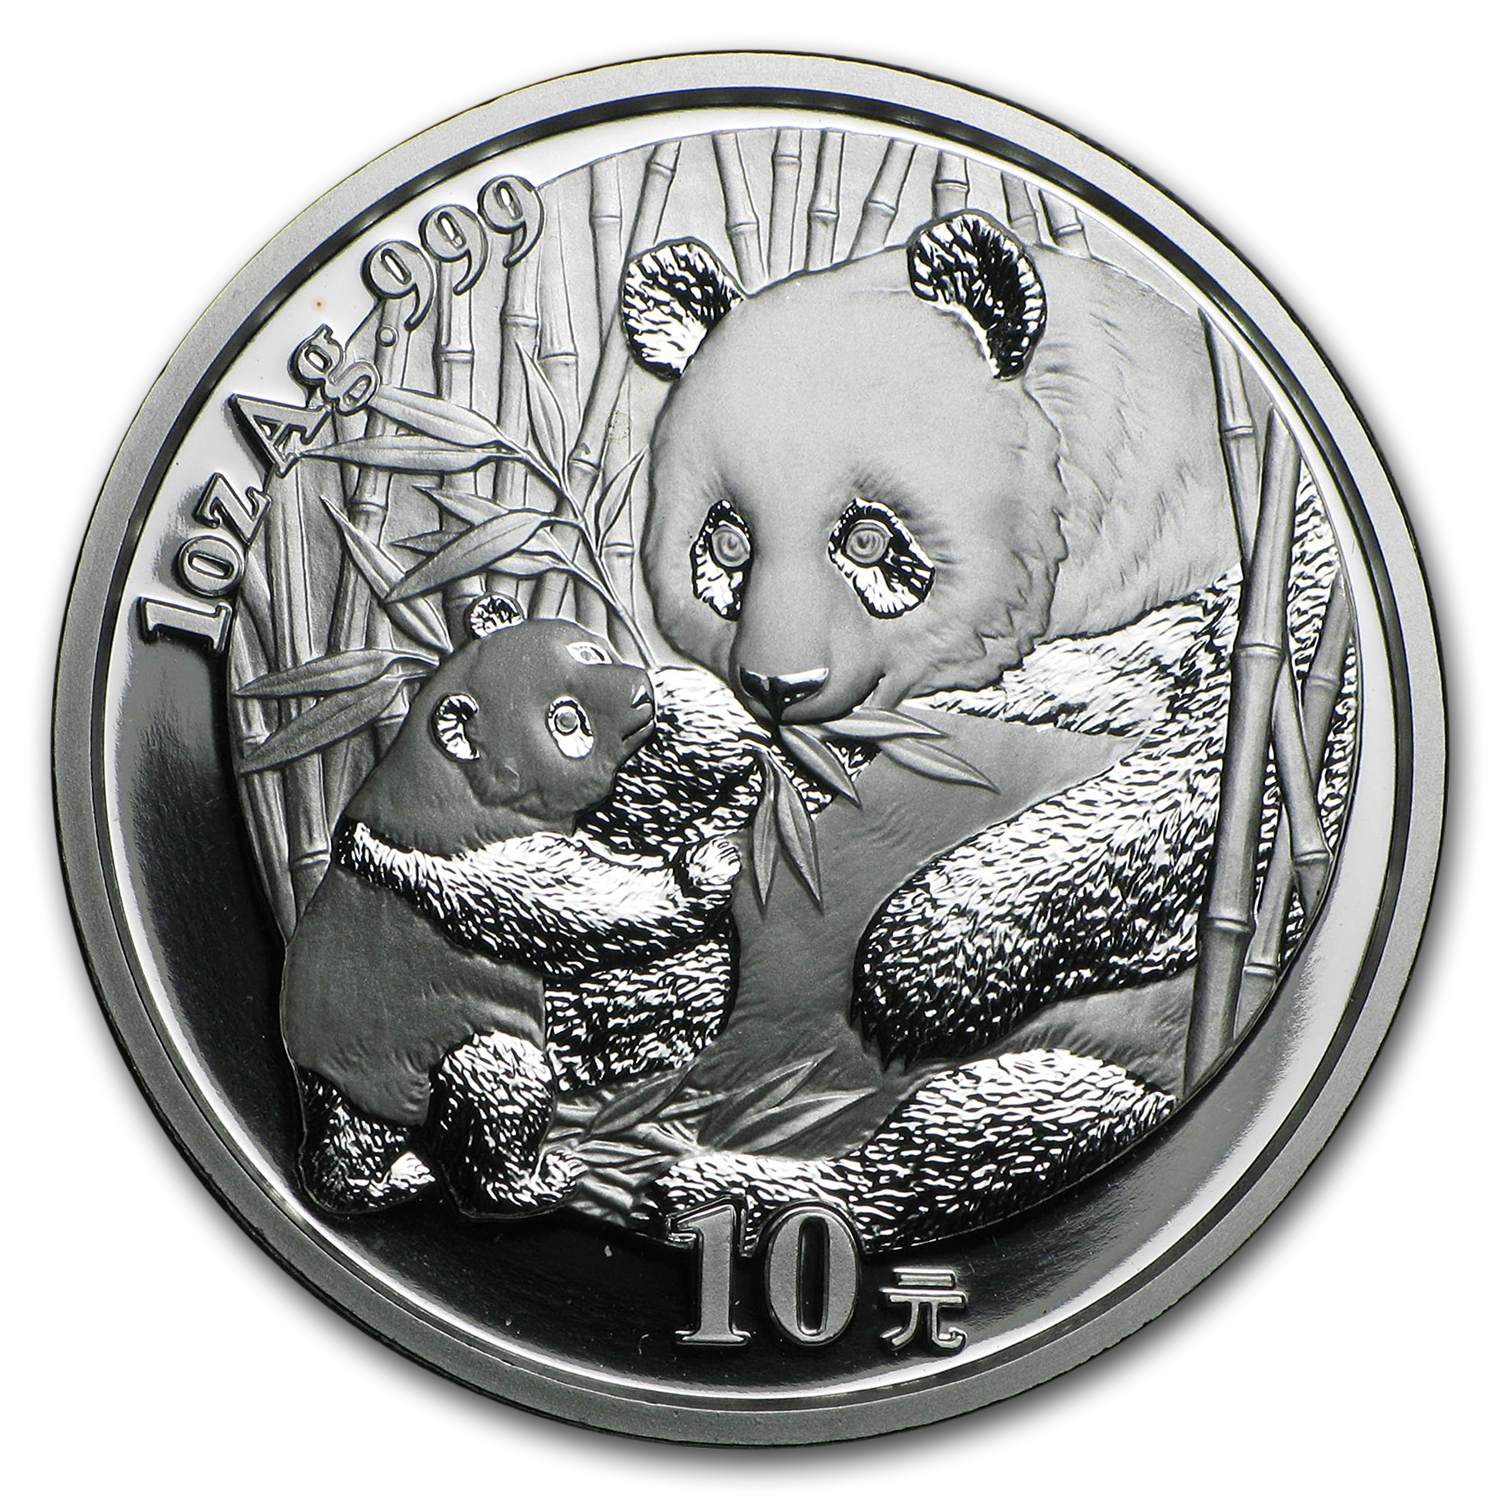 2005 1 oz Silver Chinese Panda BU (Out of Plastic)